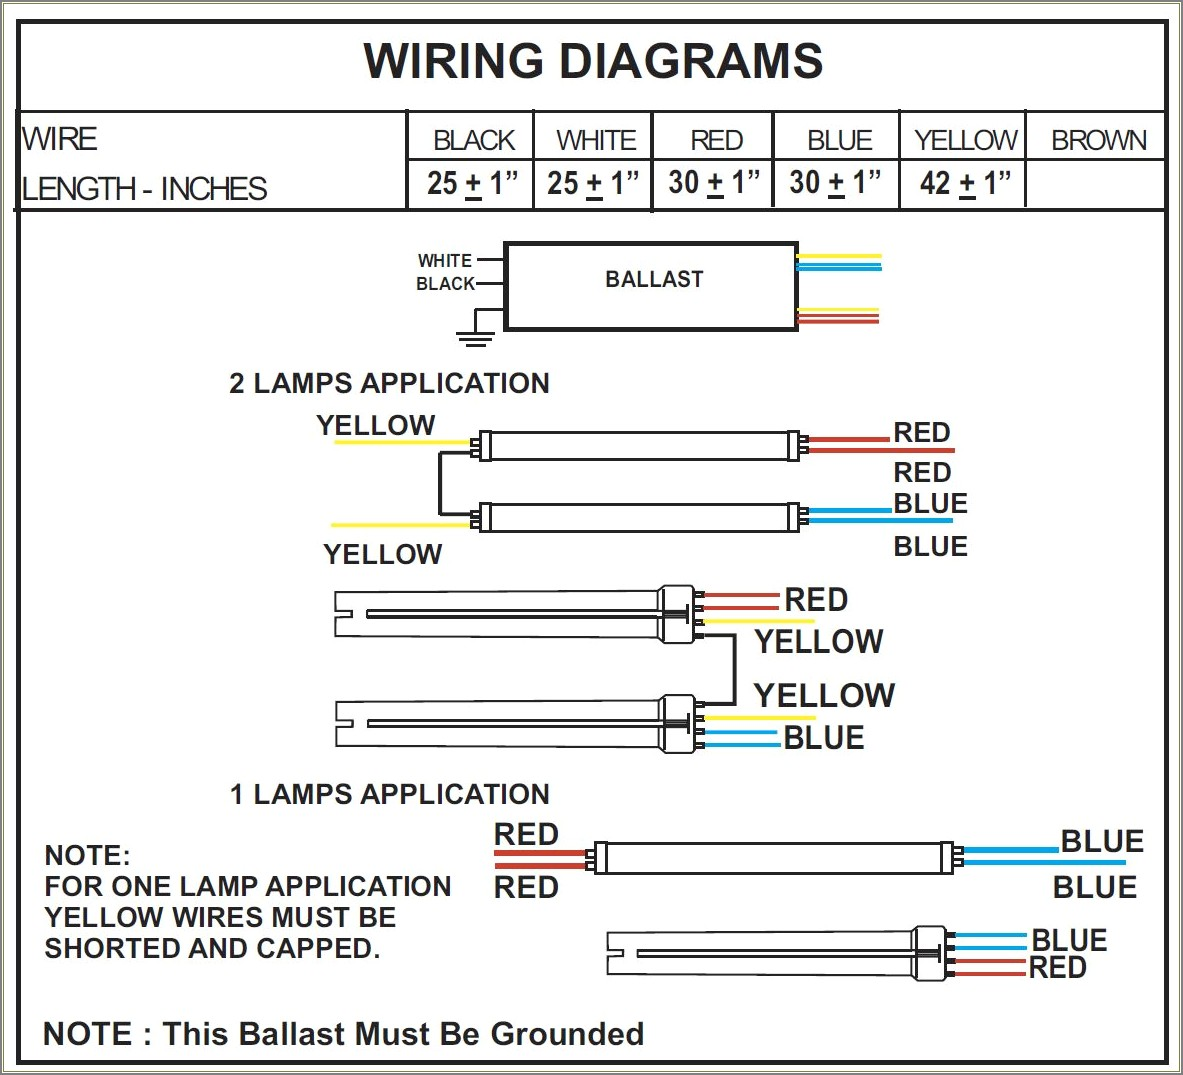 Wh2 120 L Wiring Diagram